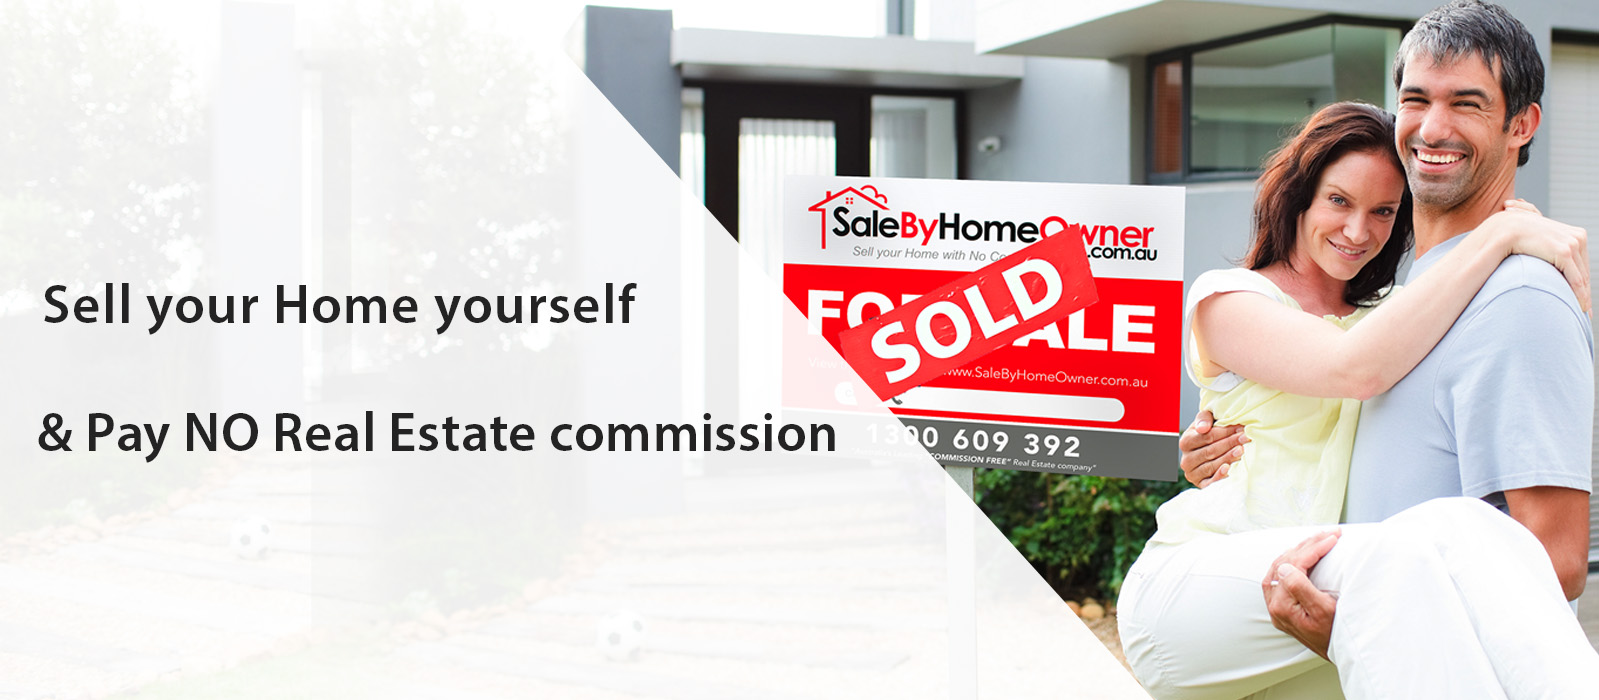 6 Steps to Sell your own House